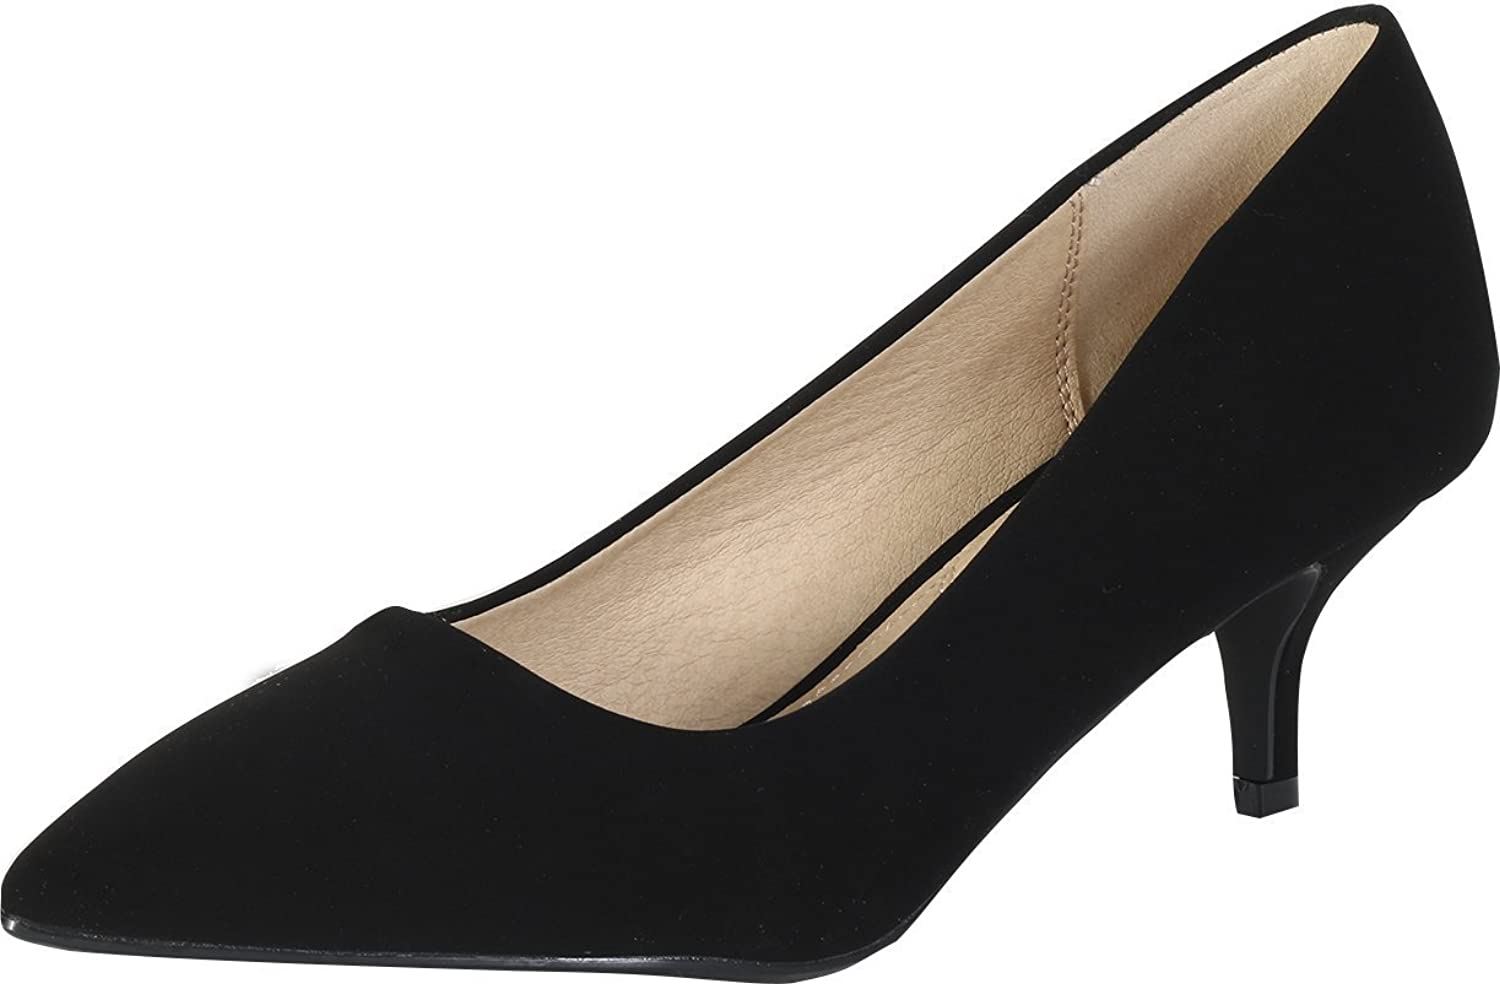 City Classified by Soda Women's Hailey Dress Pointd Toe Kitten Heel Pumps